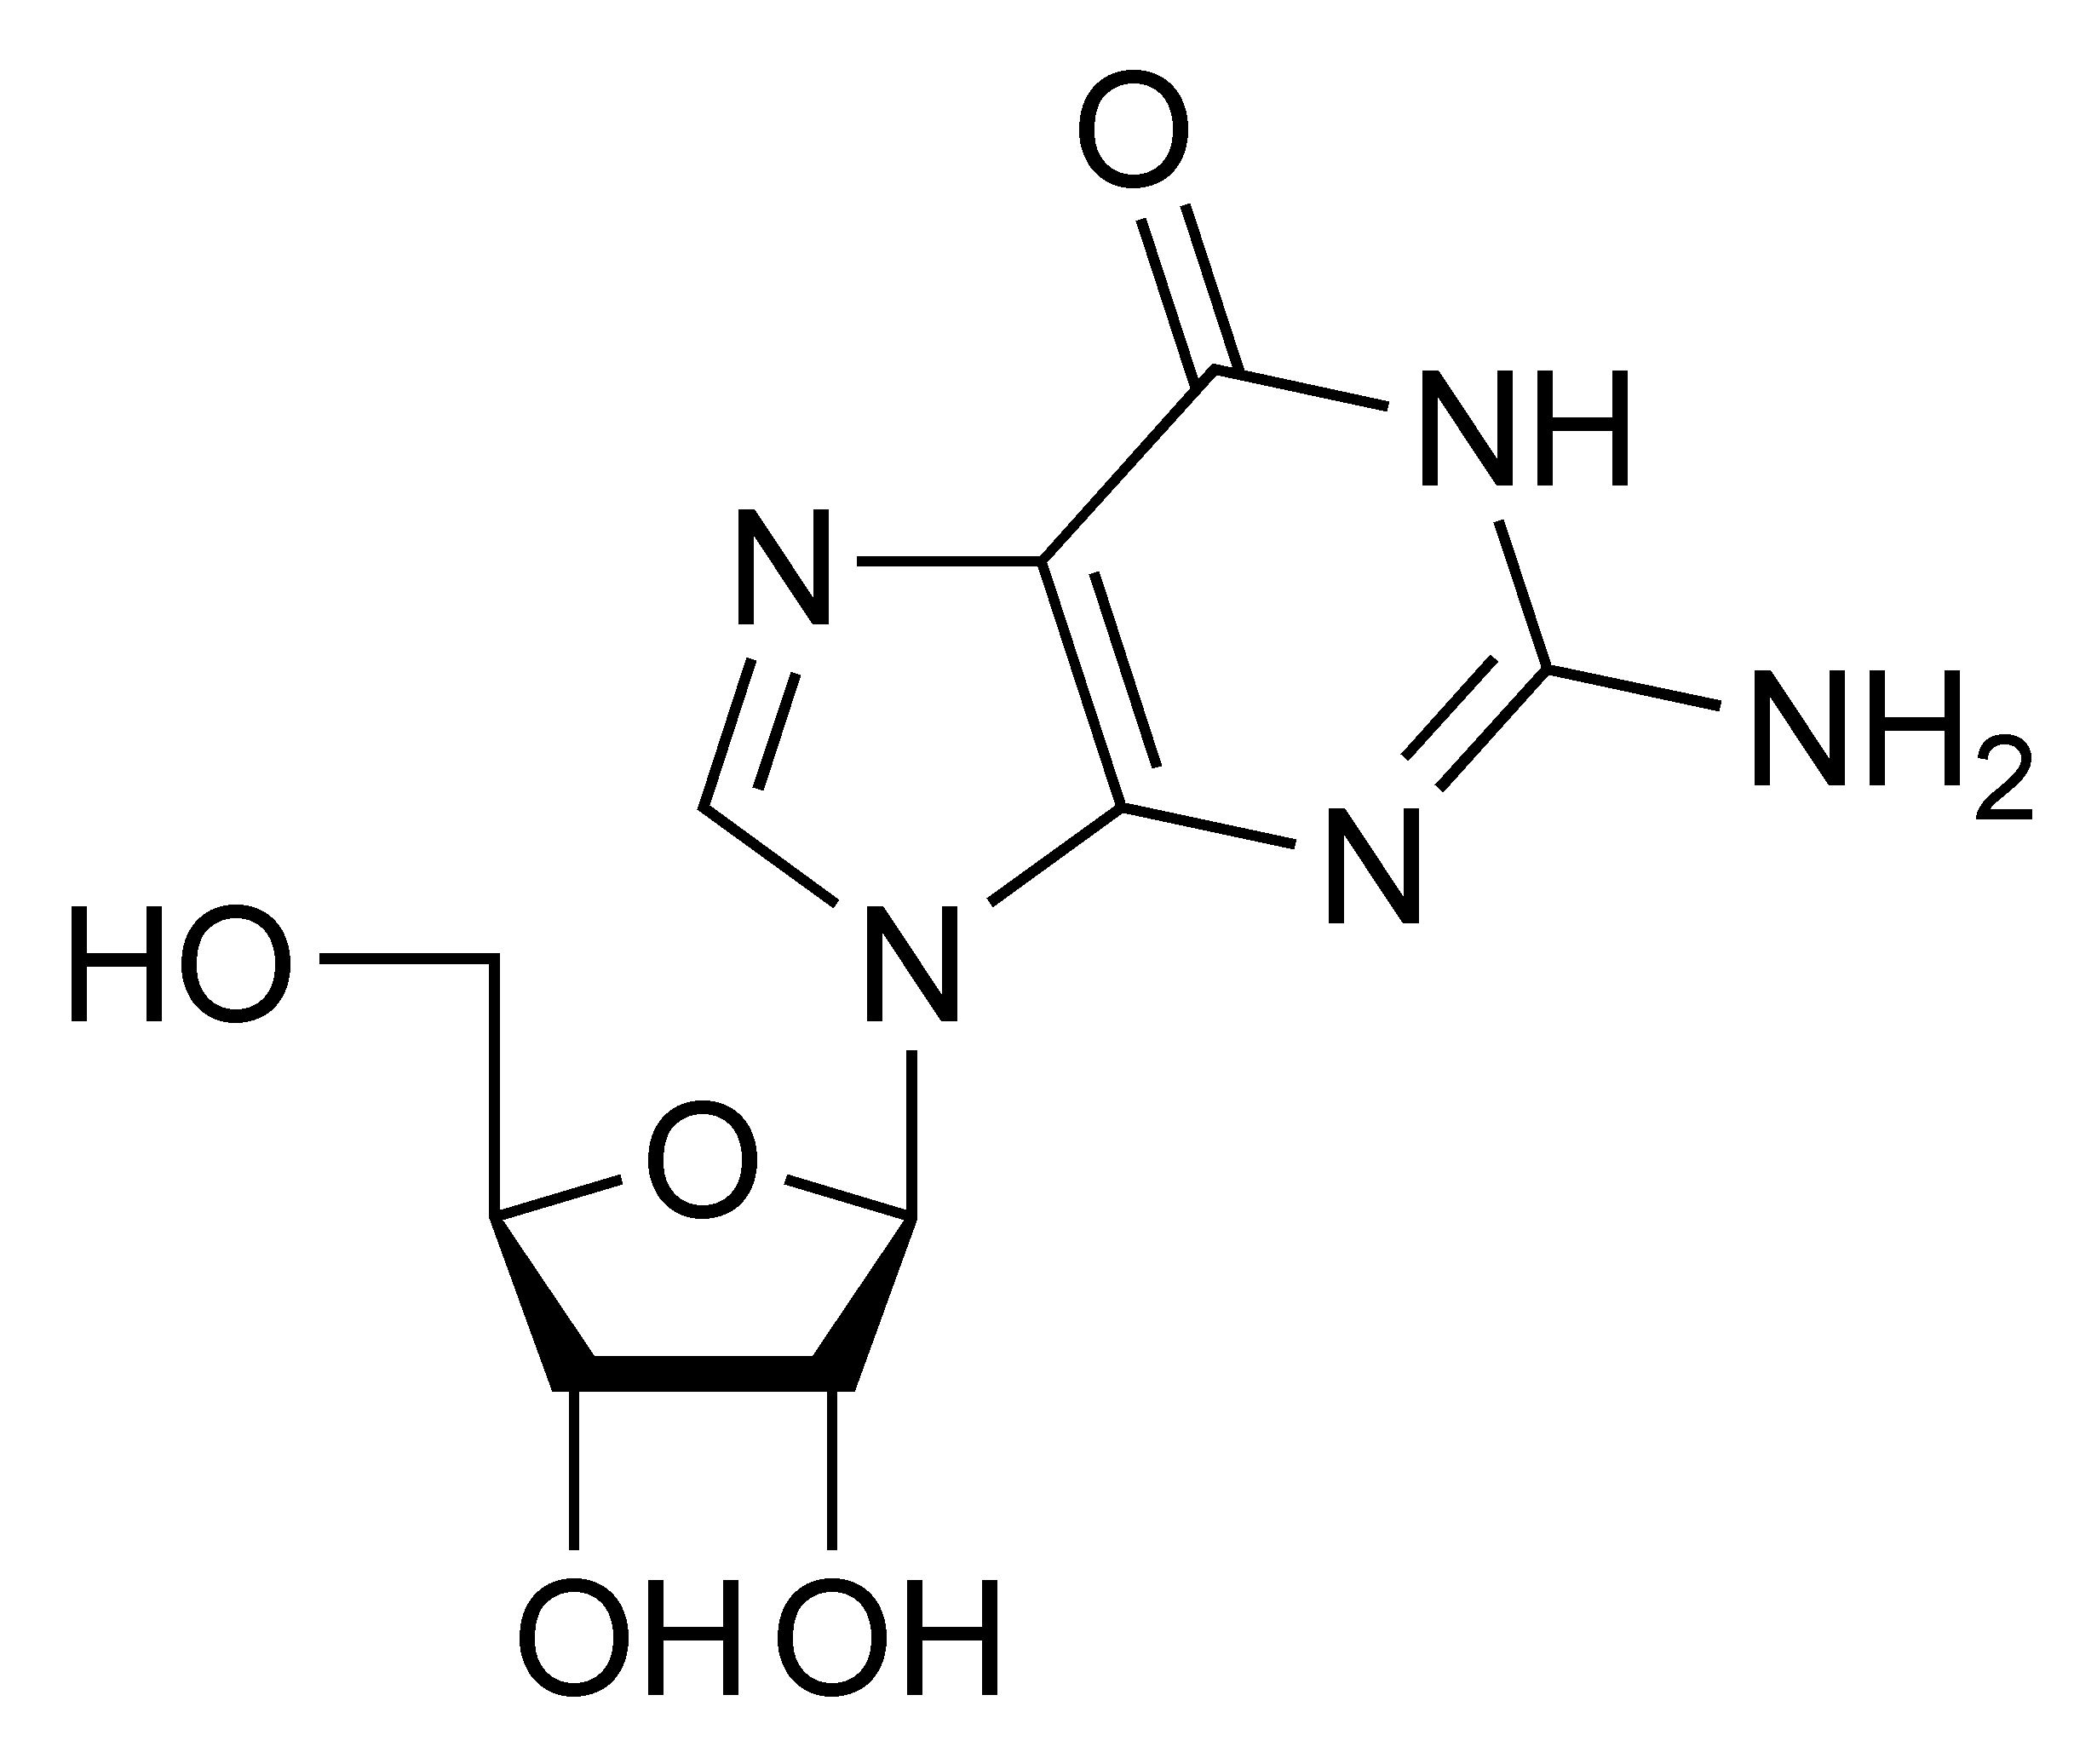 Chemical structure of guanosine